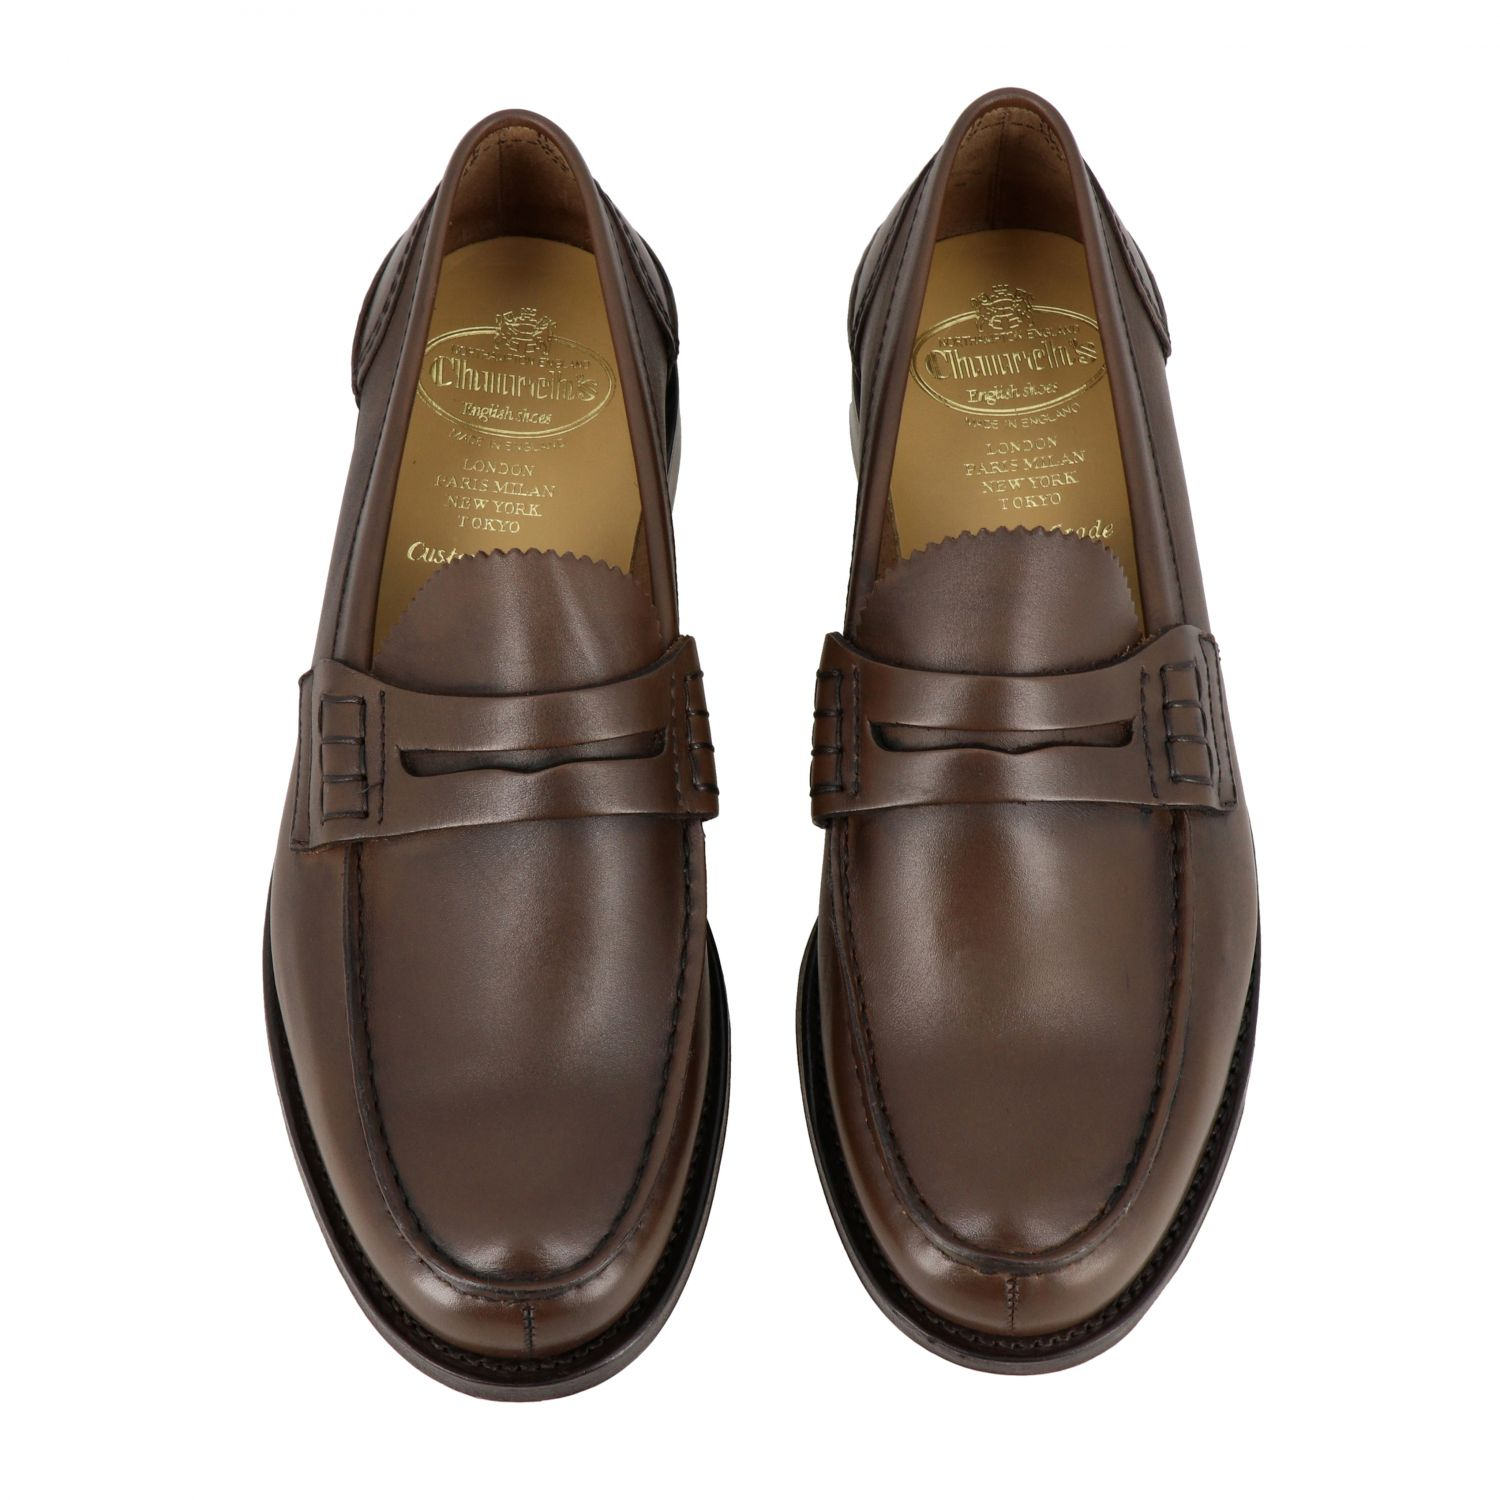 Loafers Church's: Pembrey Church's leather loafer honey 3